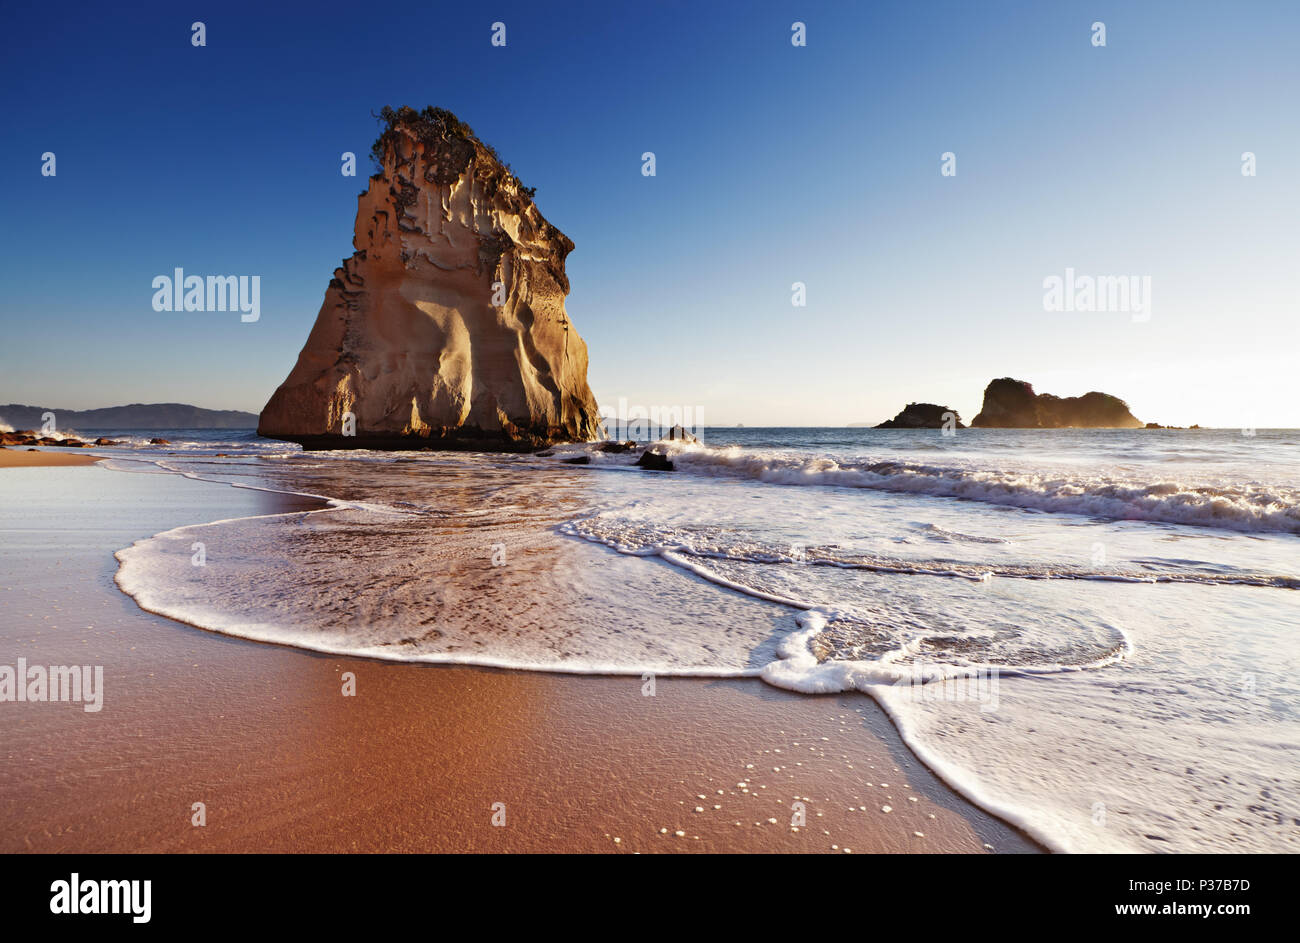 Hoho Rock, Cathedral Cove, Coromandel Peninsula, New Zealand - Stock Image